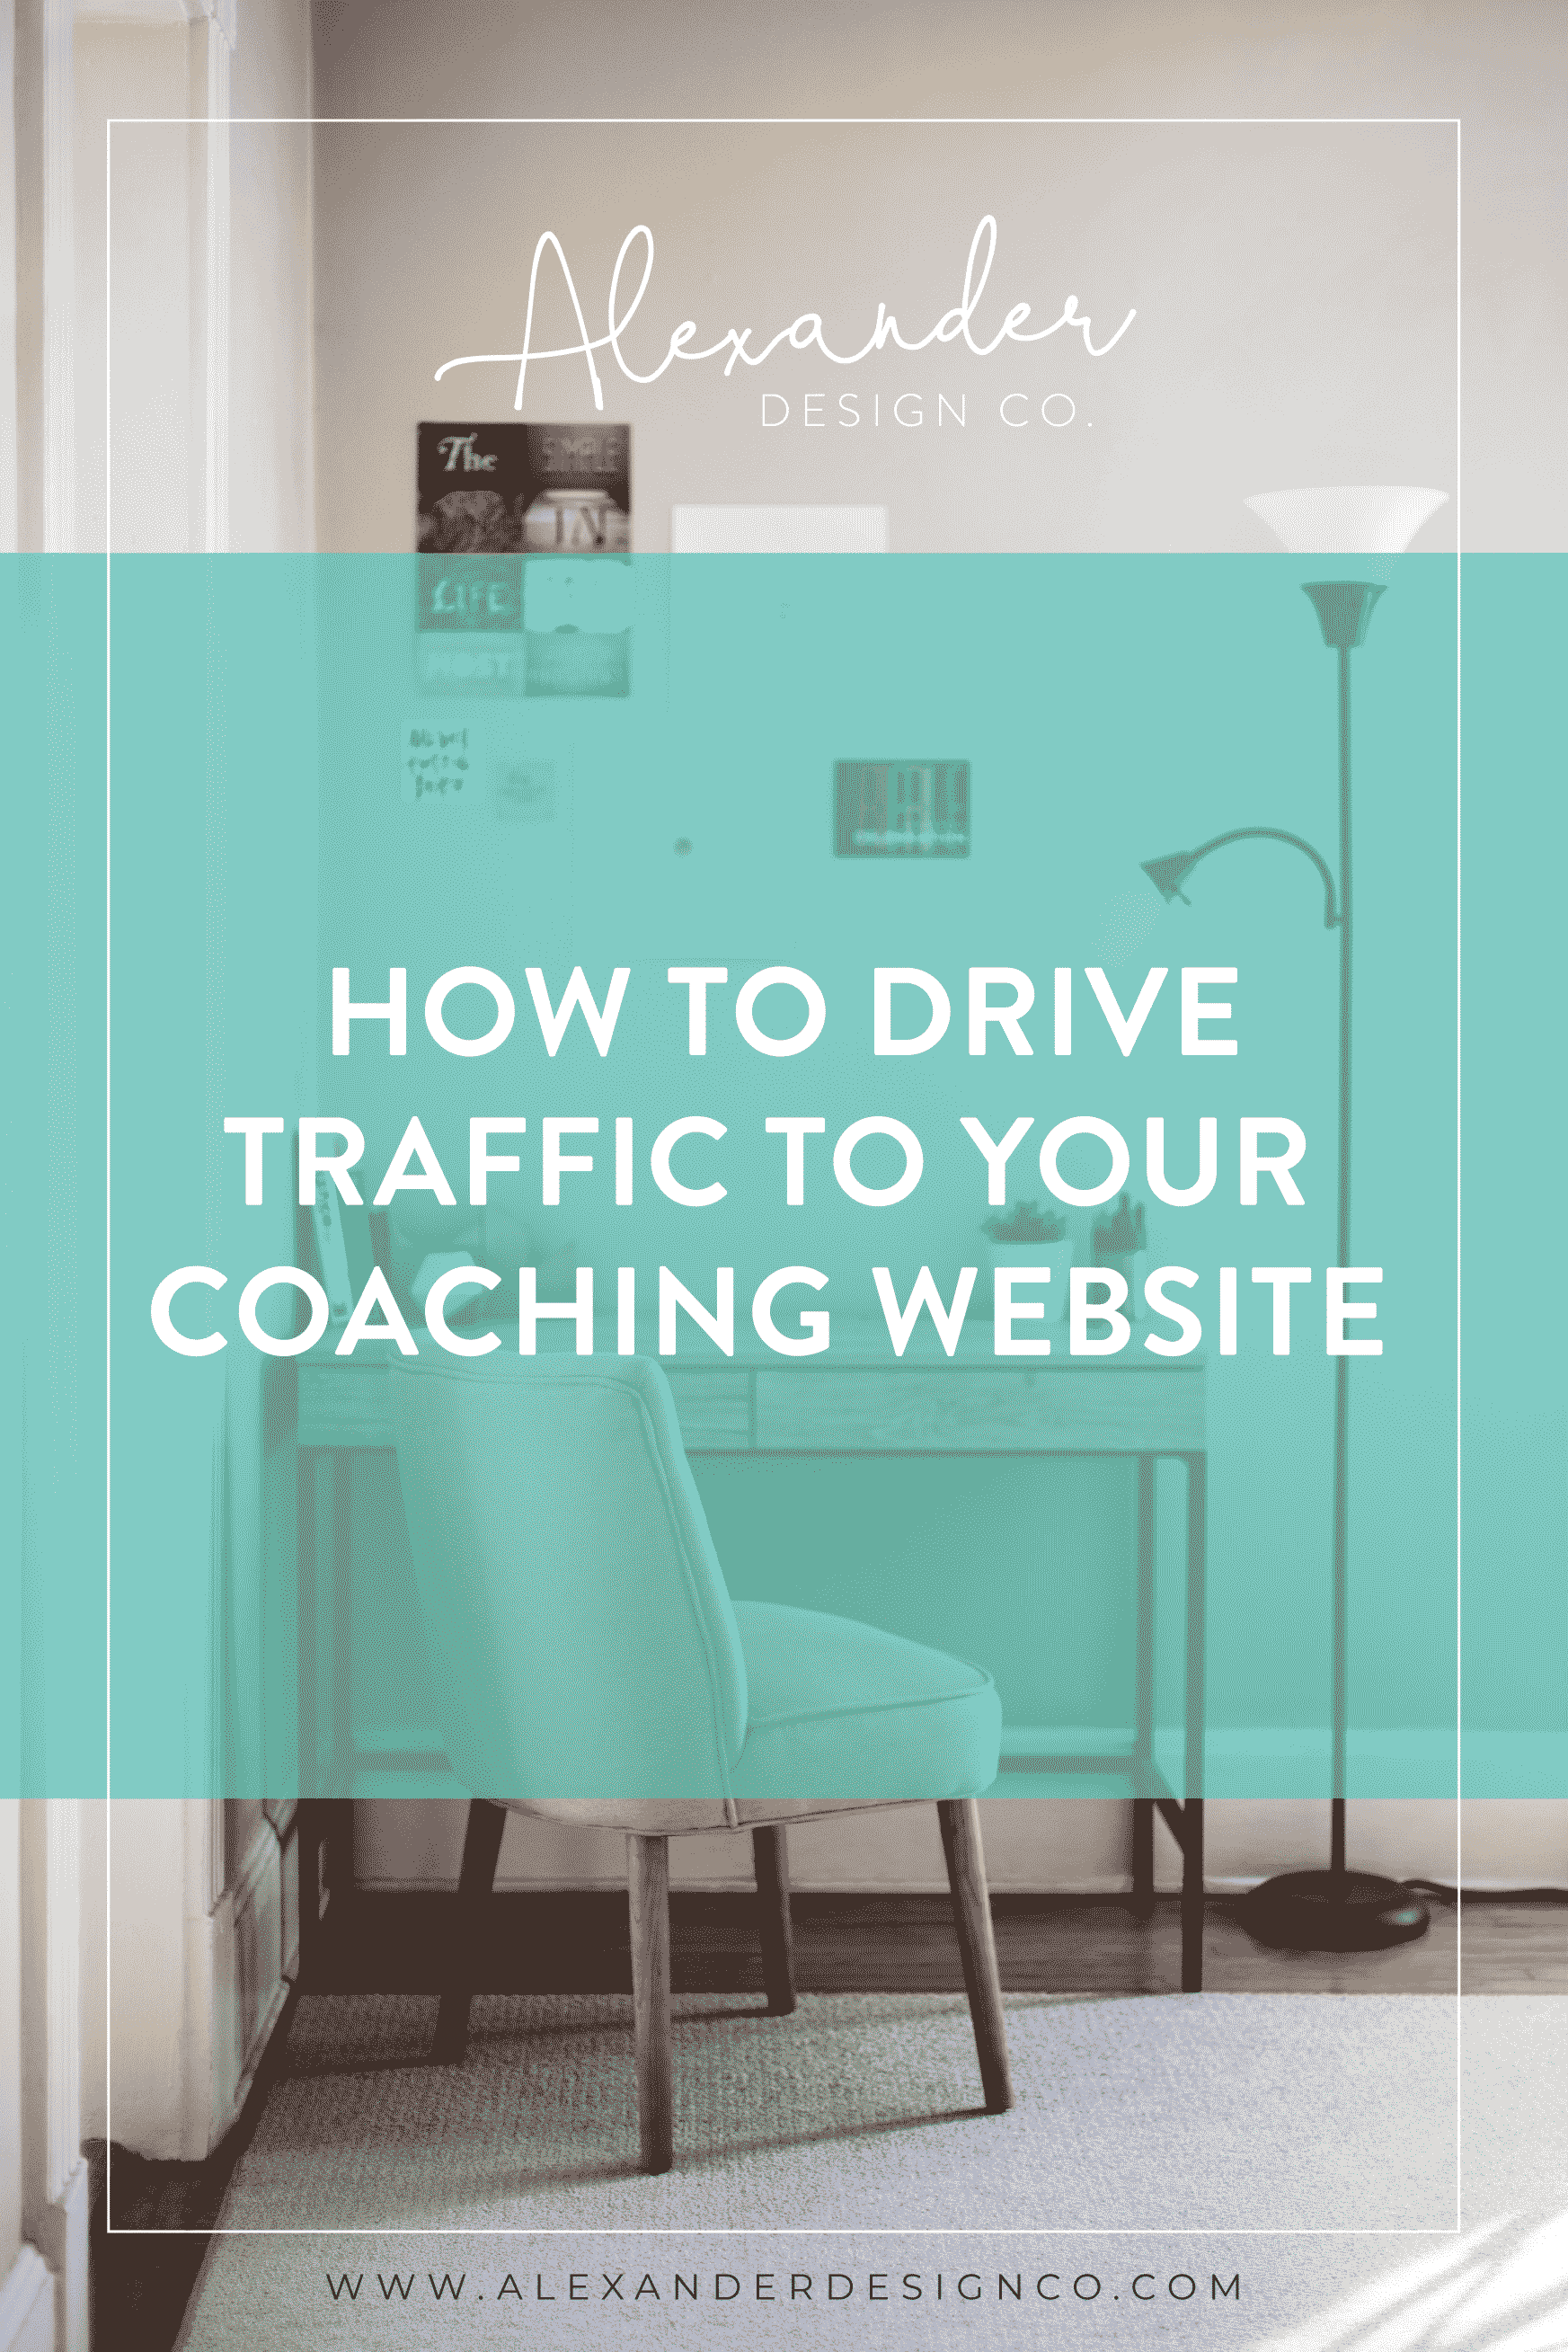 How-to-drive-traffic-to-your-coaching-website_Pinterest.png